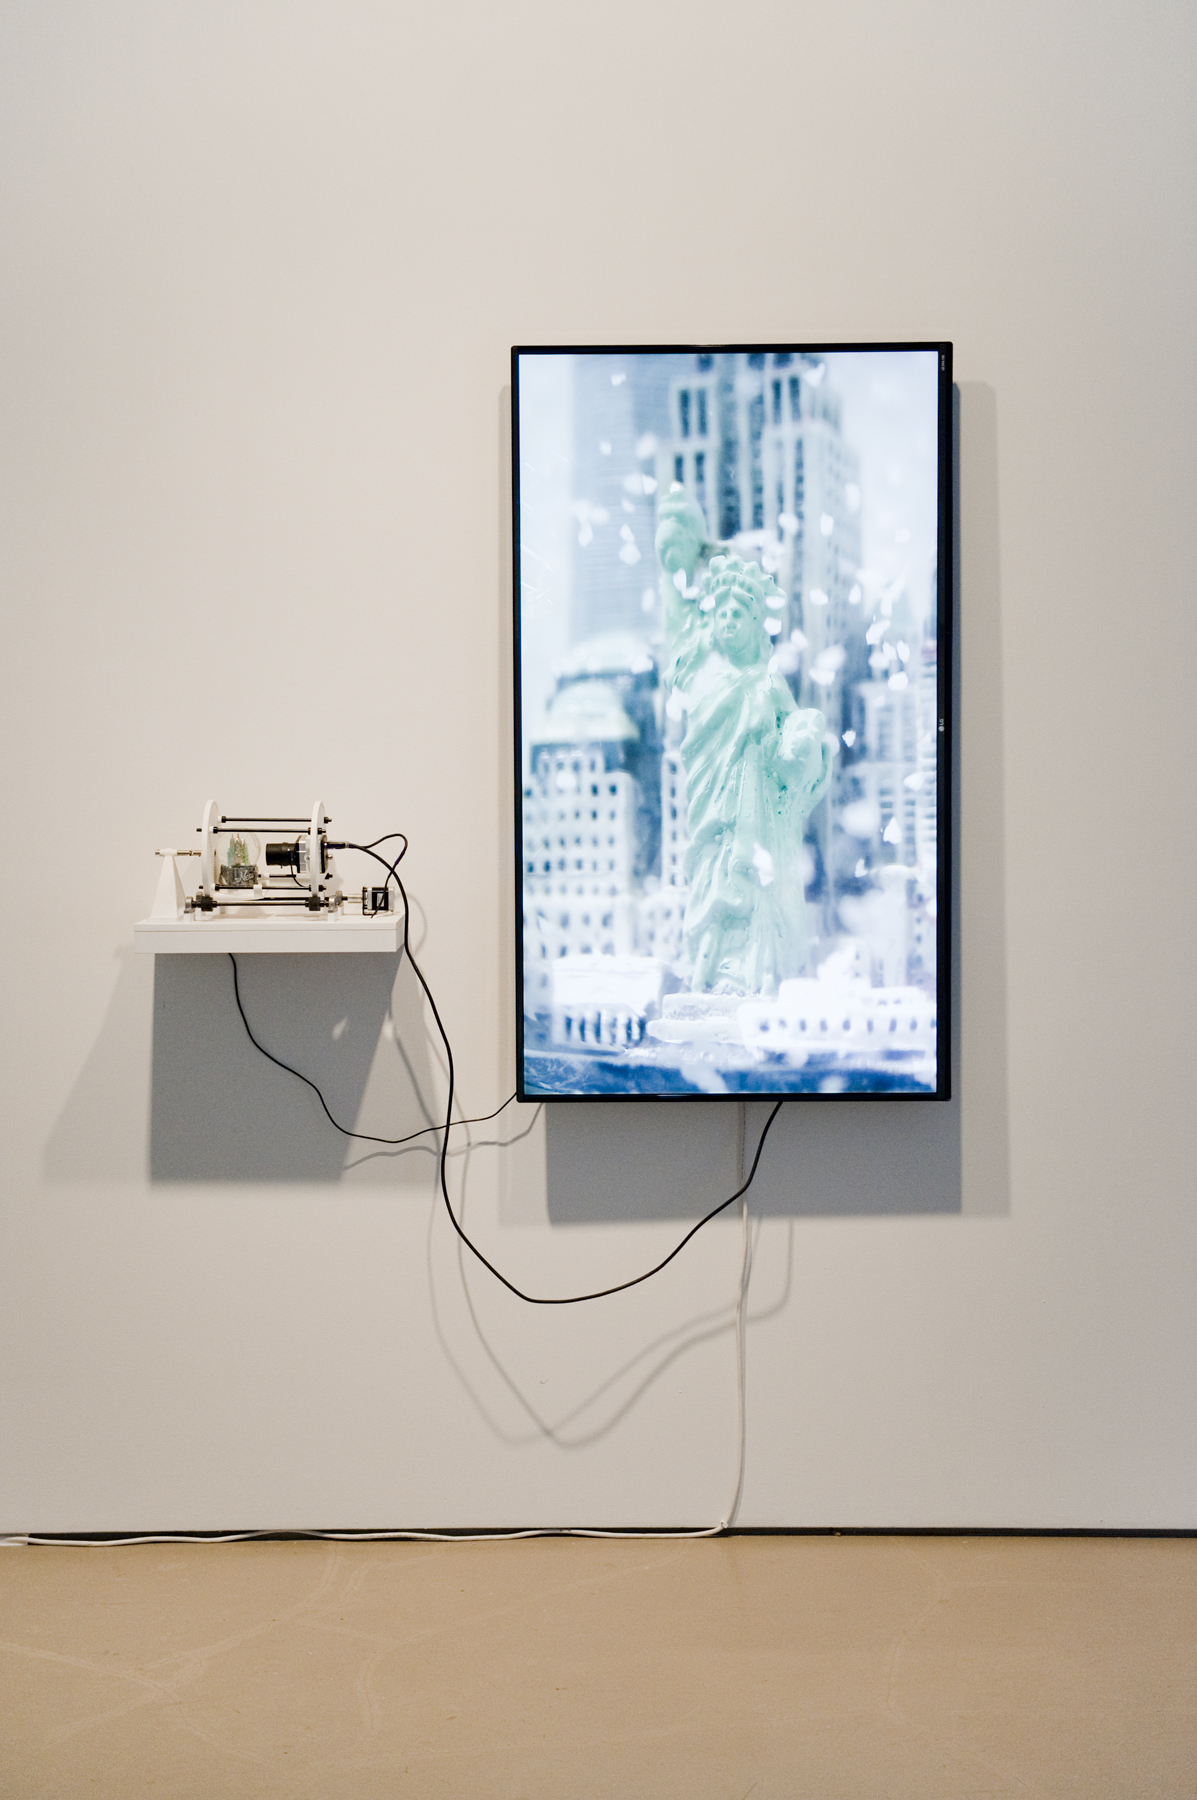 Simulation of a   Simulation (New York),  2015 camera, TV, snowglobe, motor, 3D printed parts, computer 50 x 50 x 9 inches